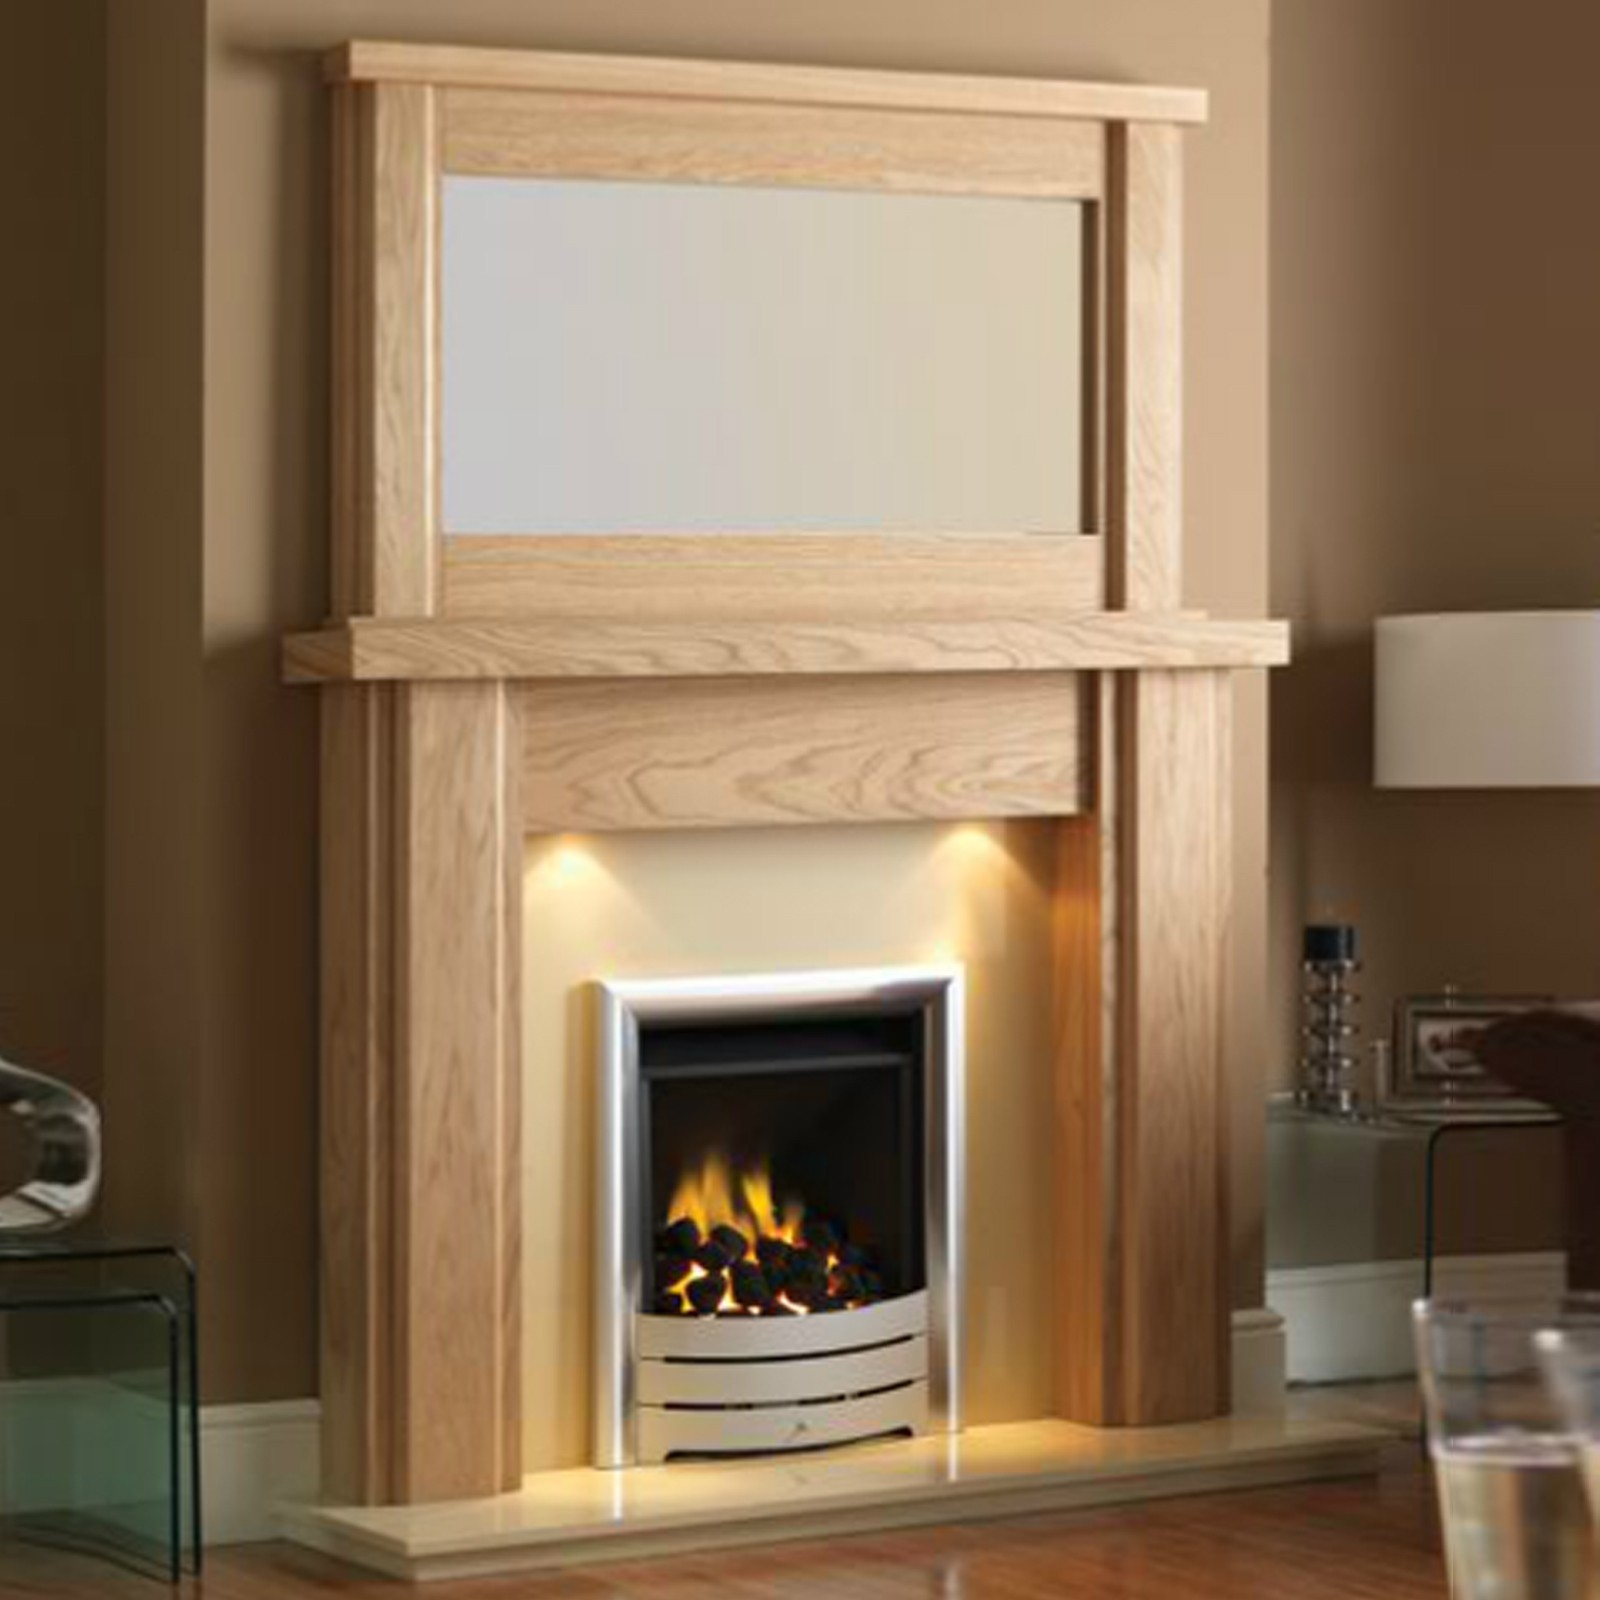 Fireplaces4life have been in the fireplace industry for many years and we are able to give you the expert advise you require. Call us now on 01274 871010 for any further information. product